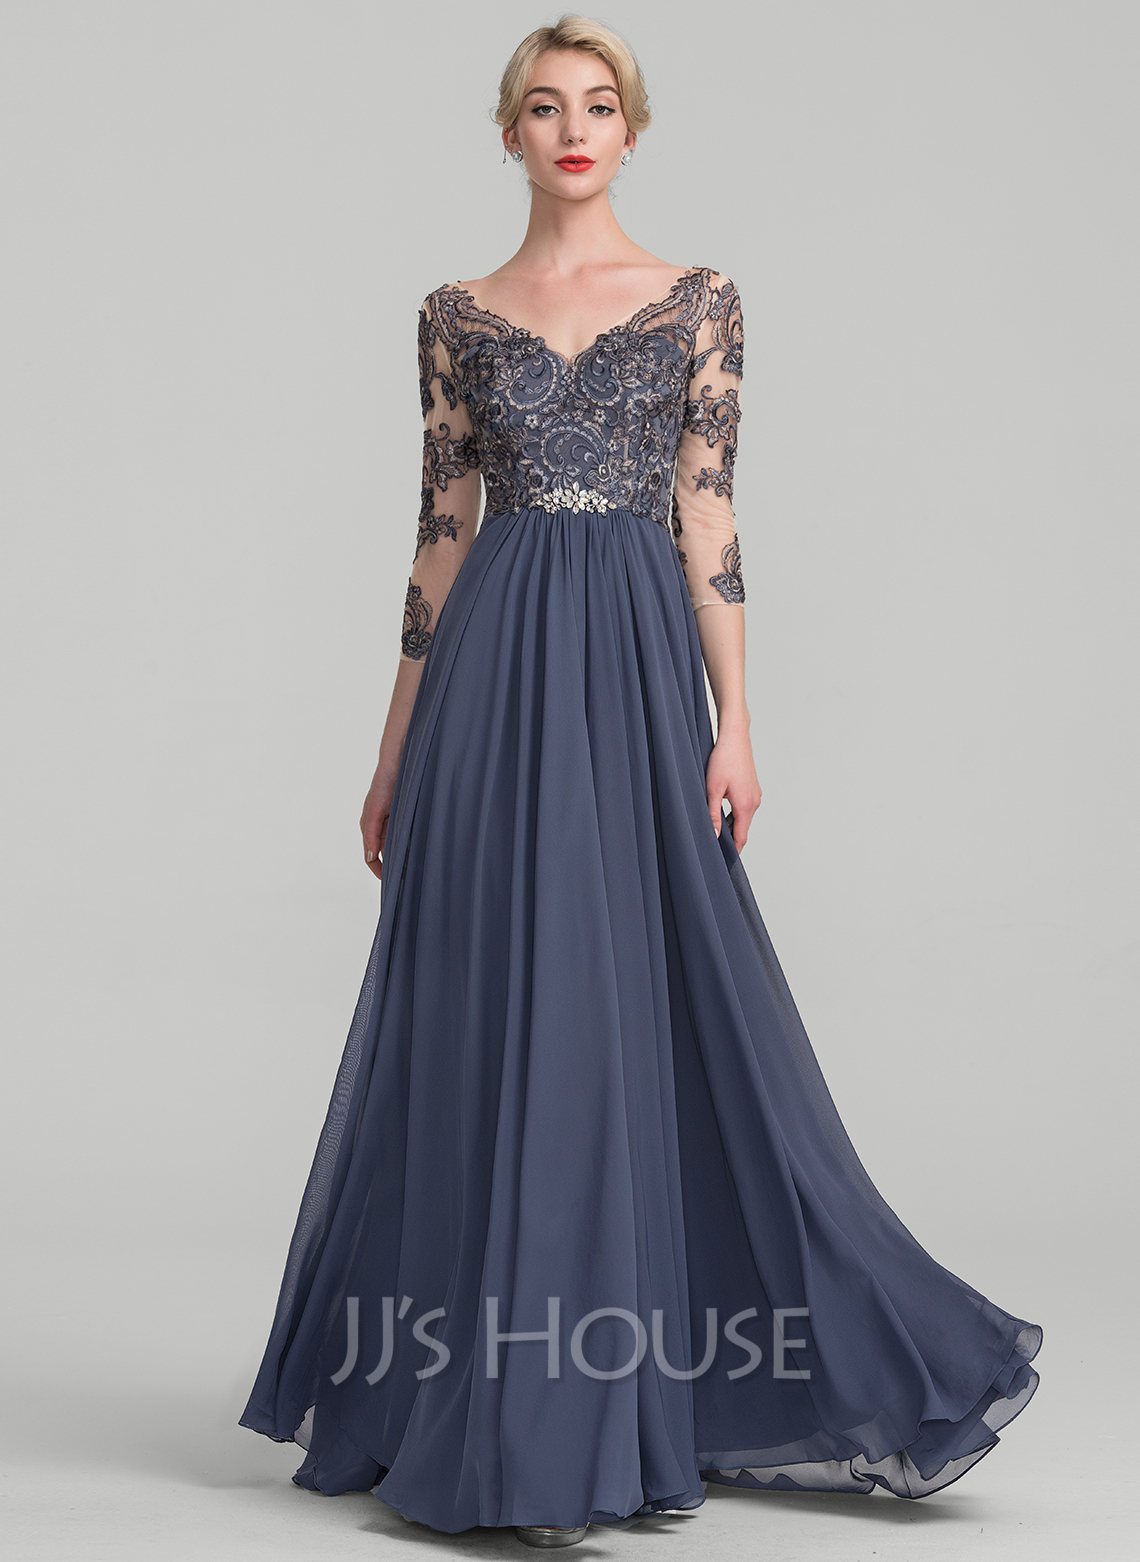 93dbaffab226d A-Line/Princess V-neck Floor-Length Chiffon Lace Mother of the. Loading zoom